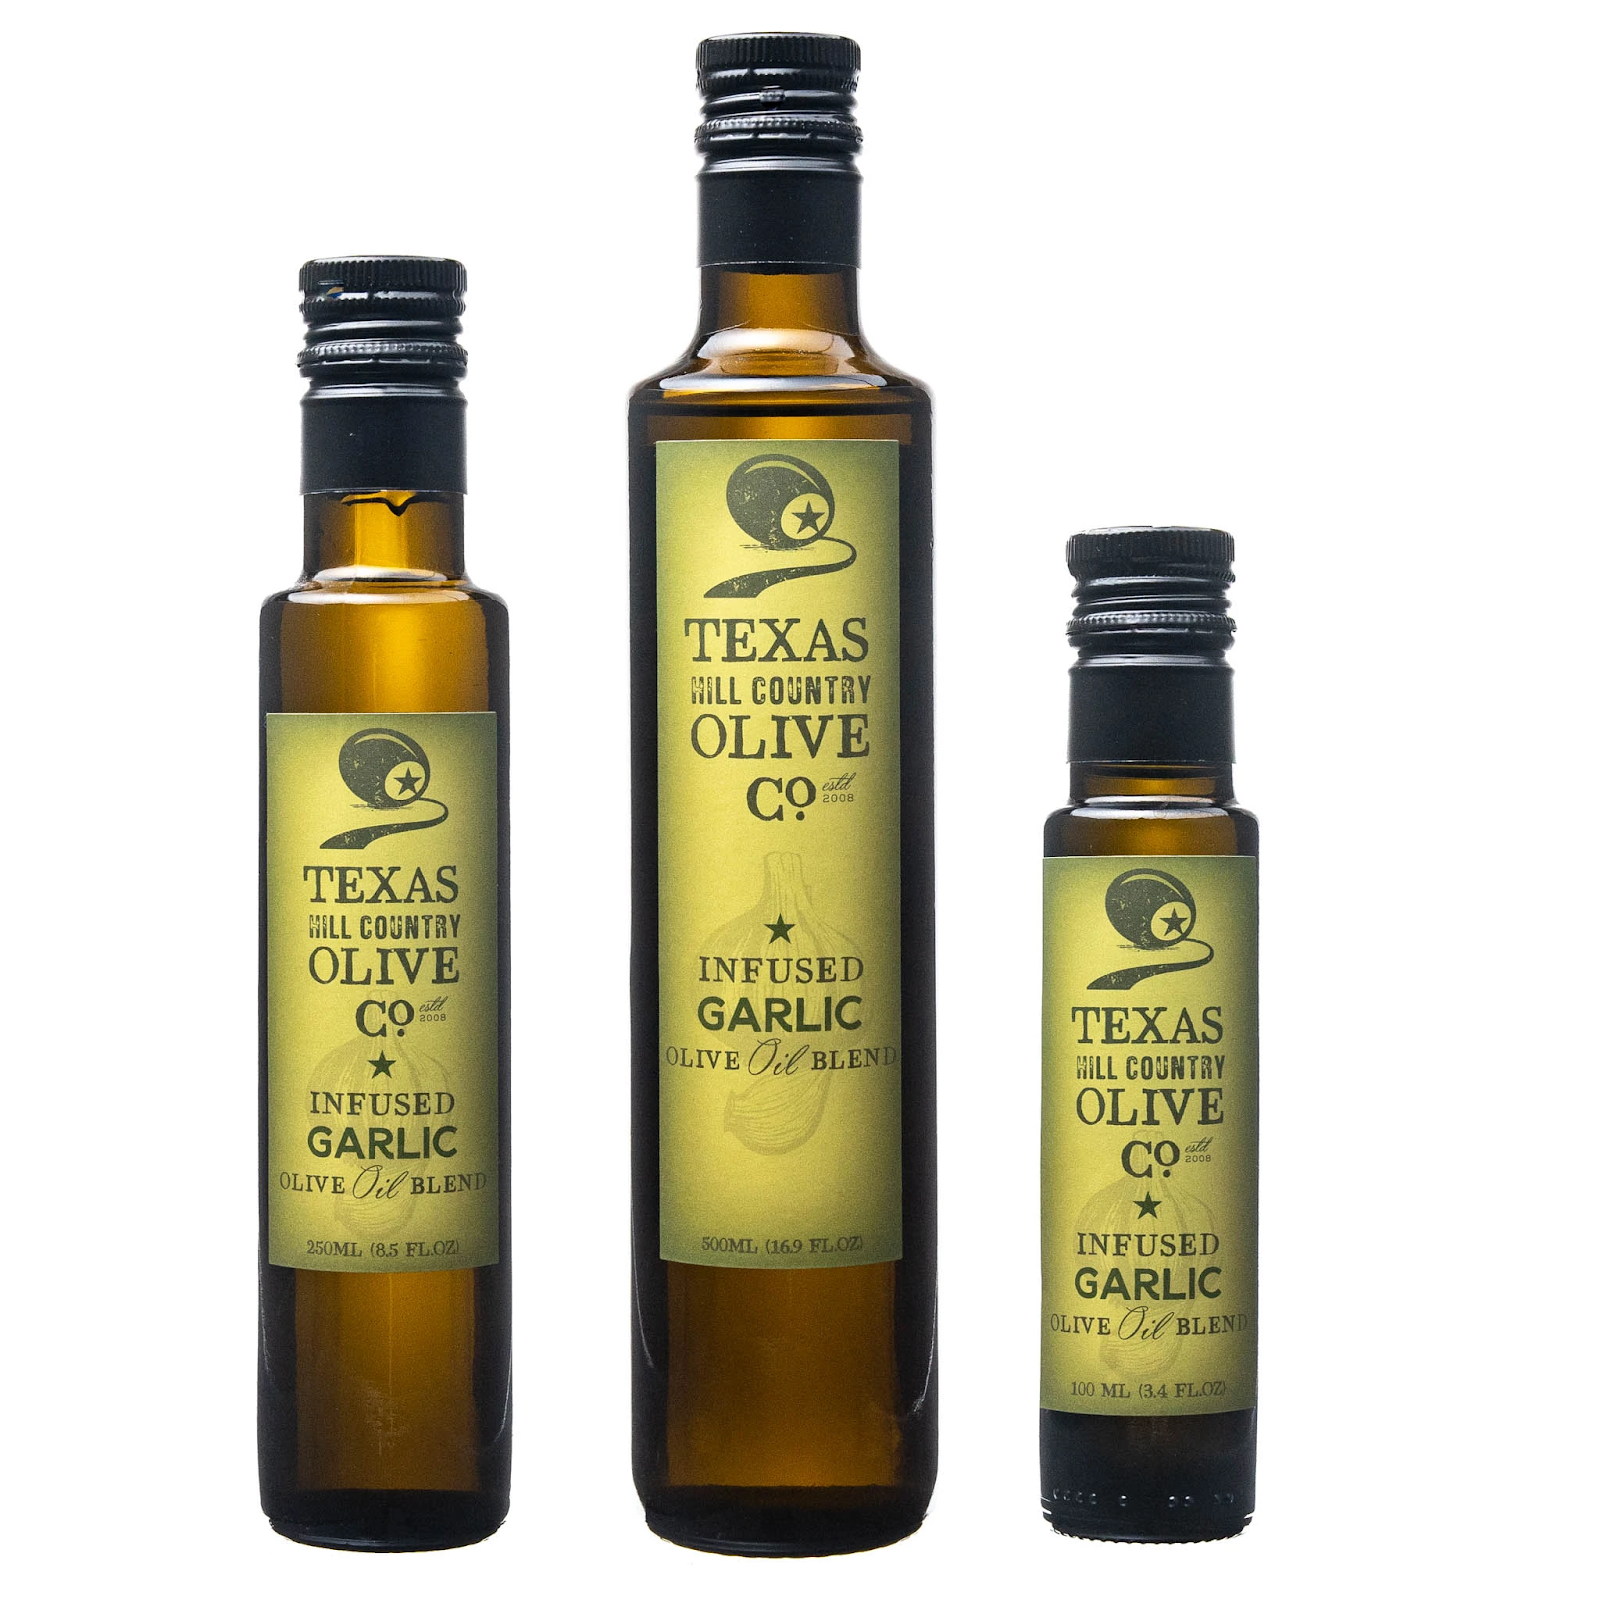 Garlic Infused Texas Olive Oil